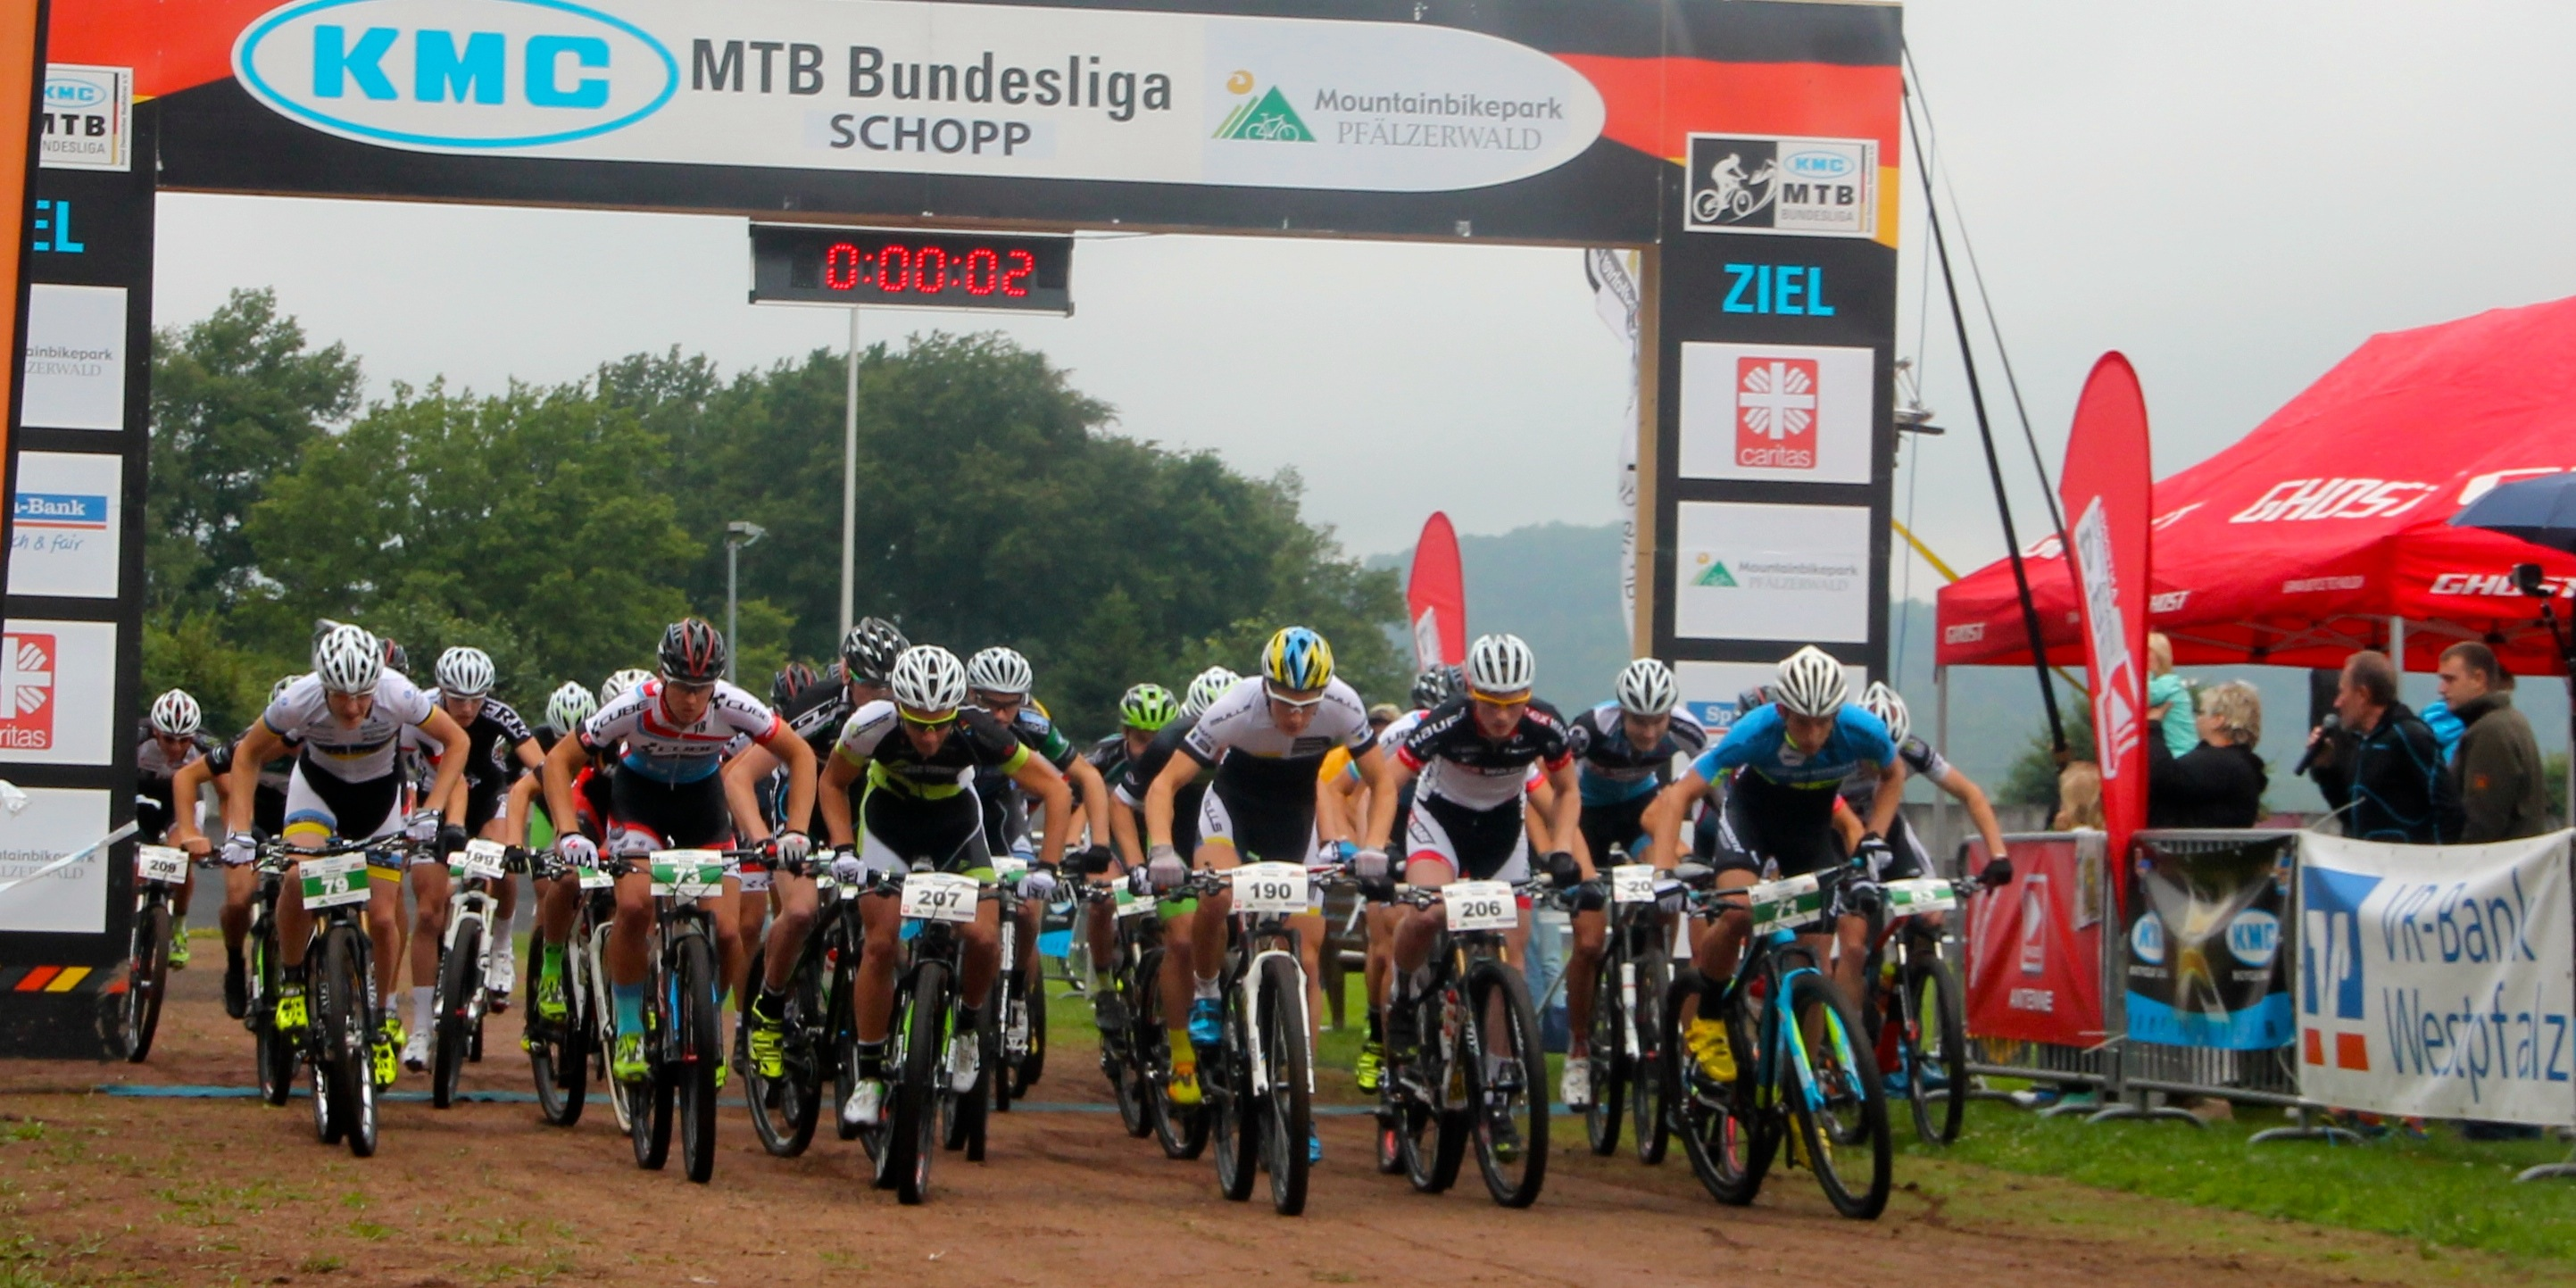 start_U23men_Wolf_Frey_Pfaeffle_Zwiehoff_Schopp_xco_u23men_by Goller